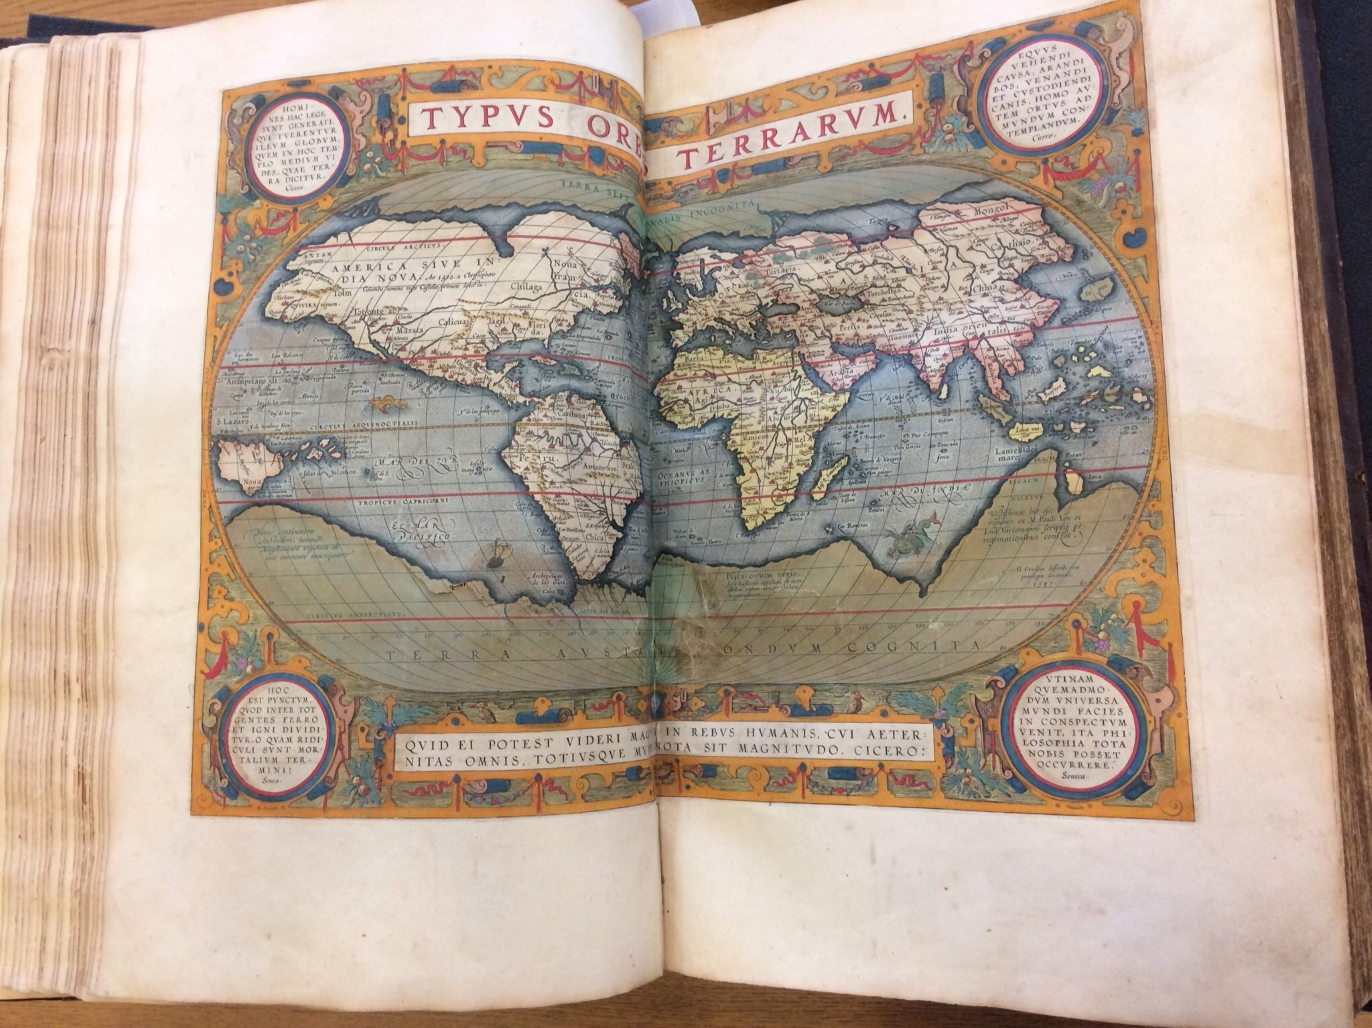 A large open book showing a hand-colored map of the world. At the top is the text Typus Orbis Terrarum.